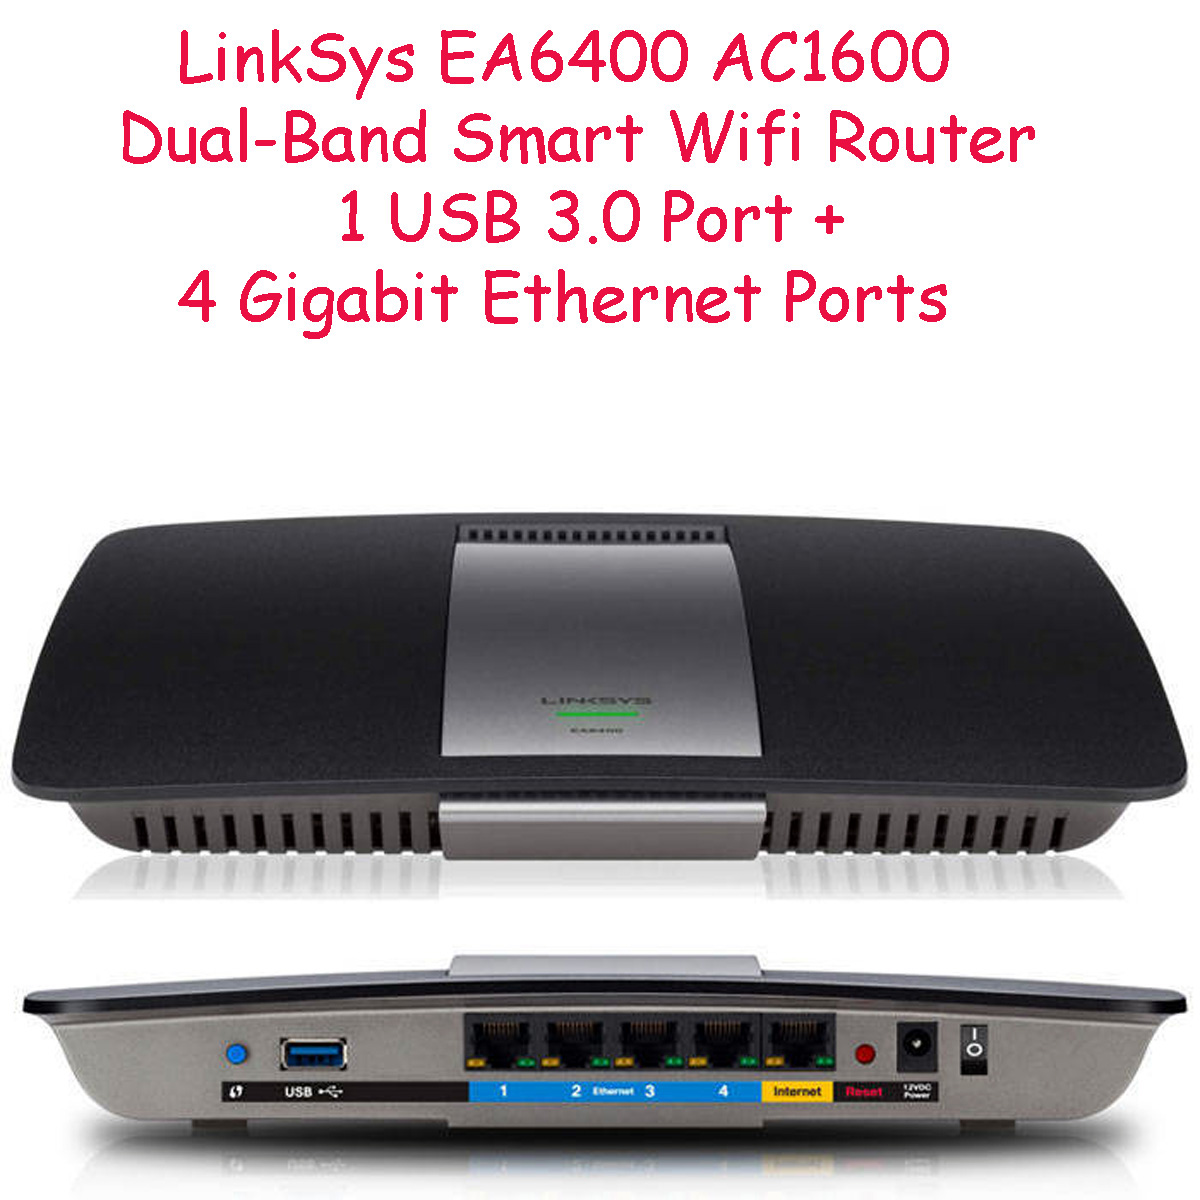 linksys ea6400 quick start guide